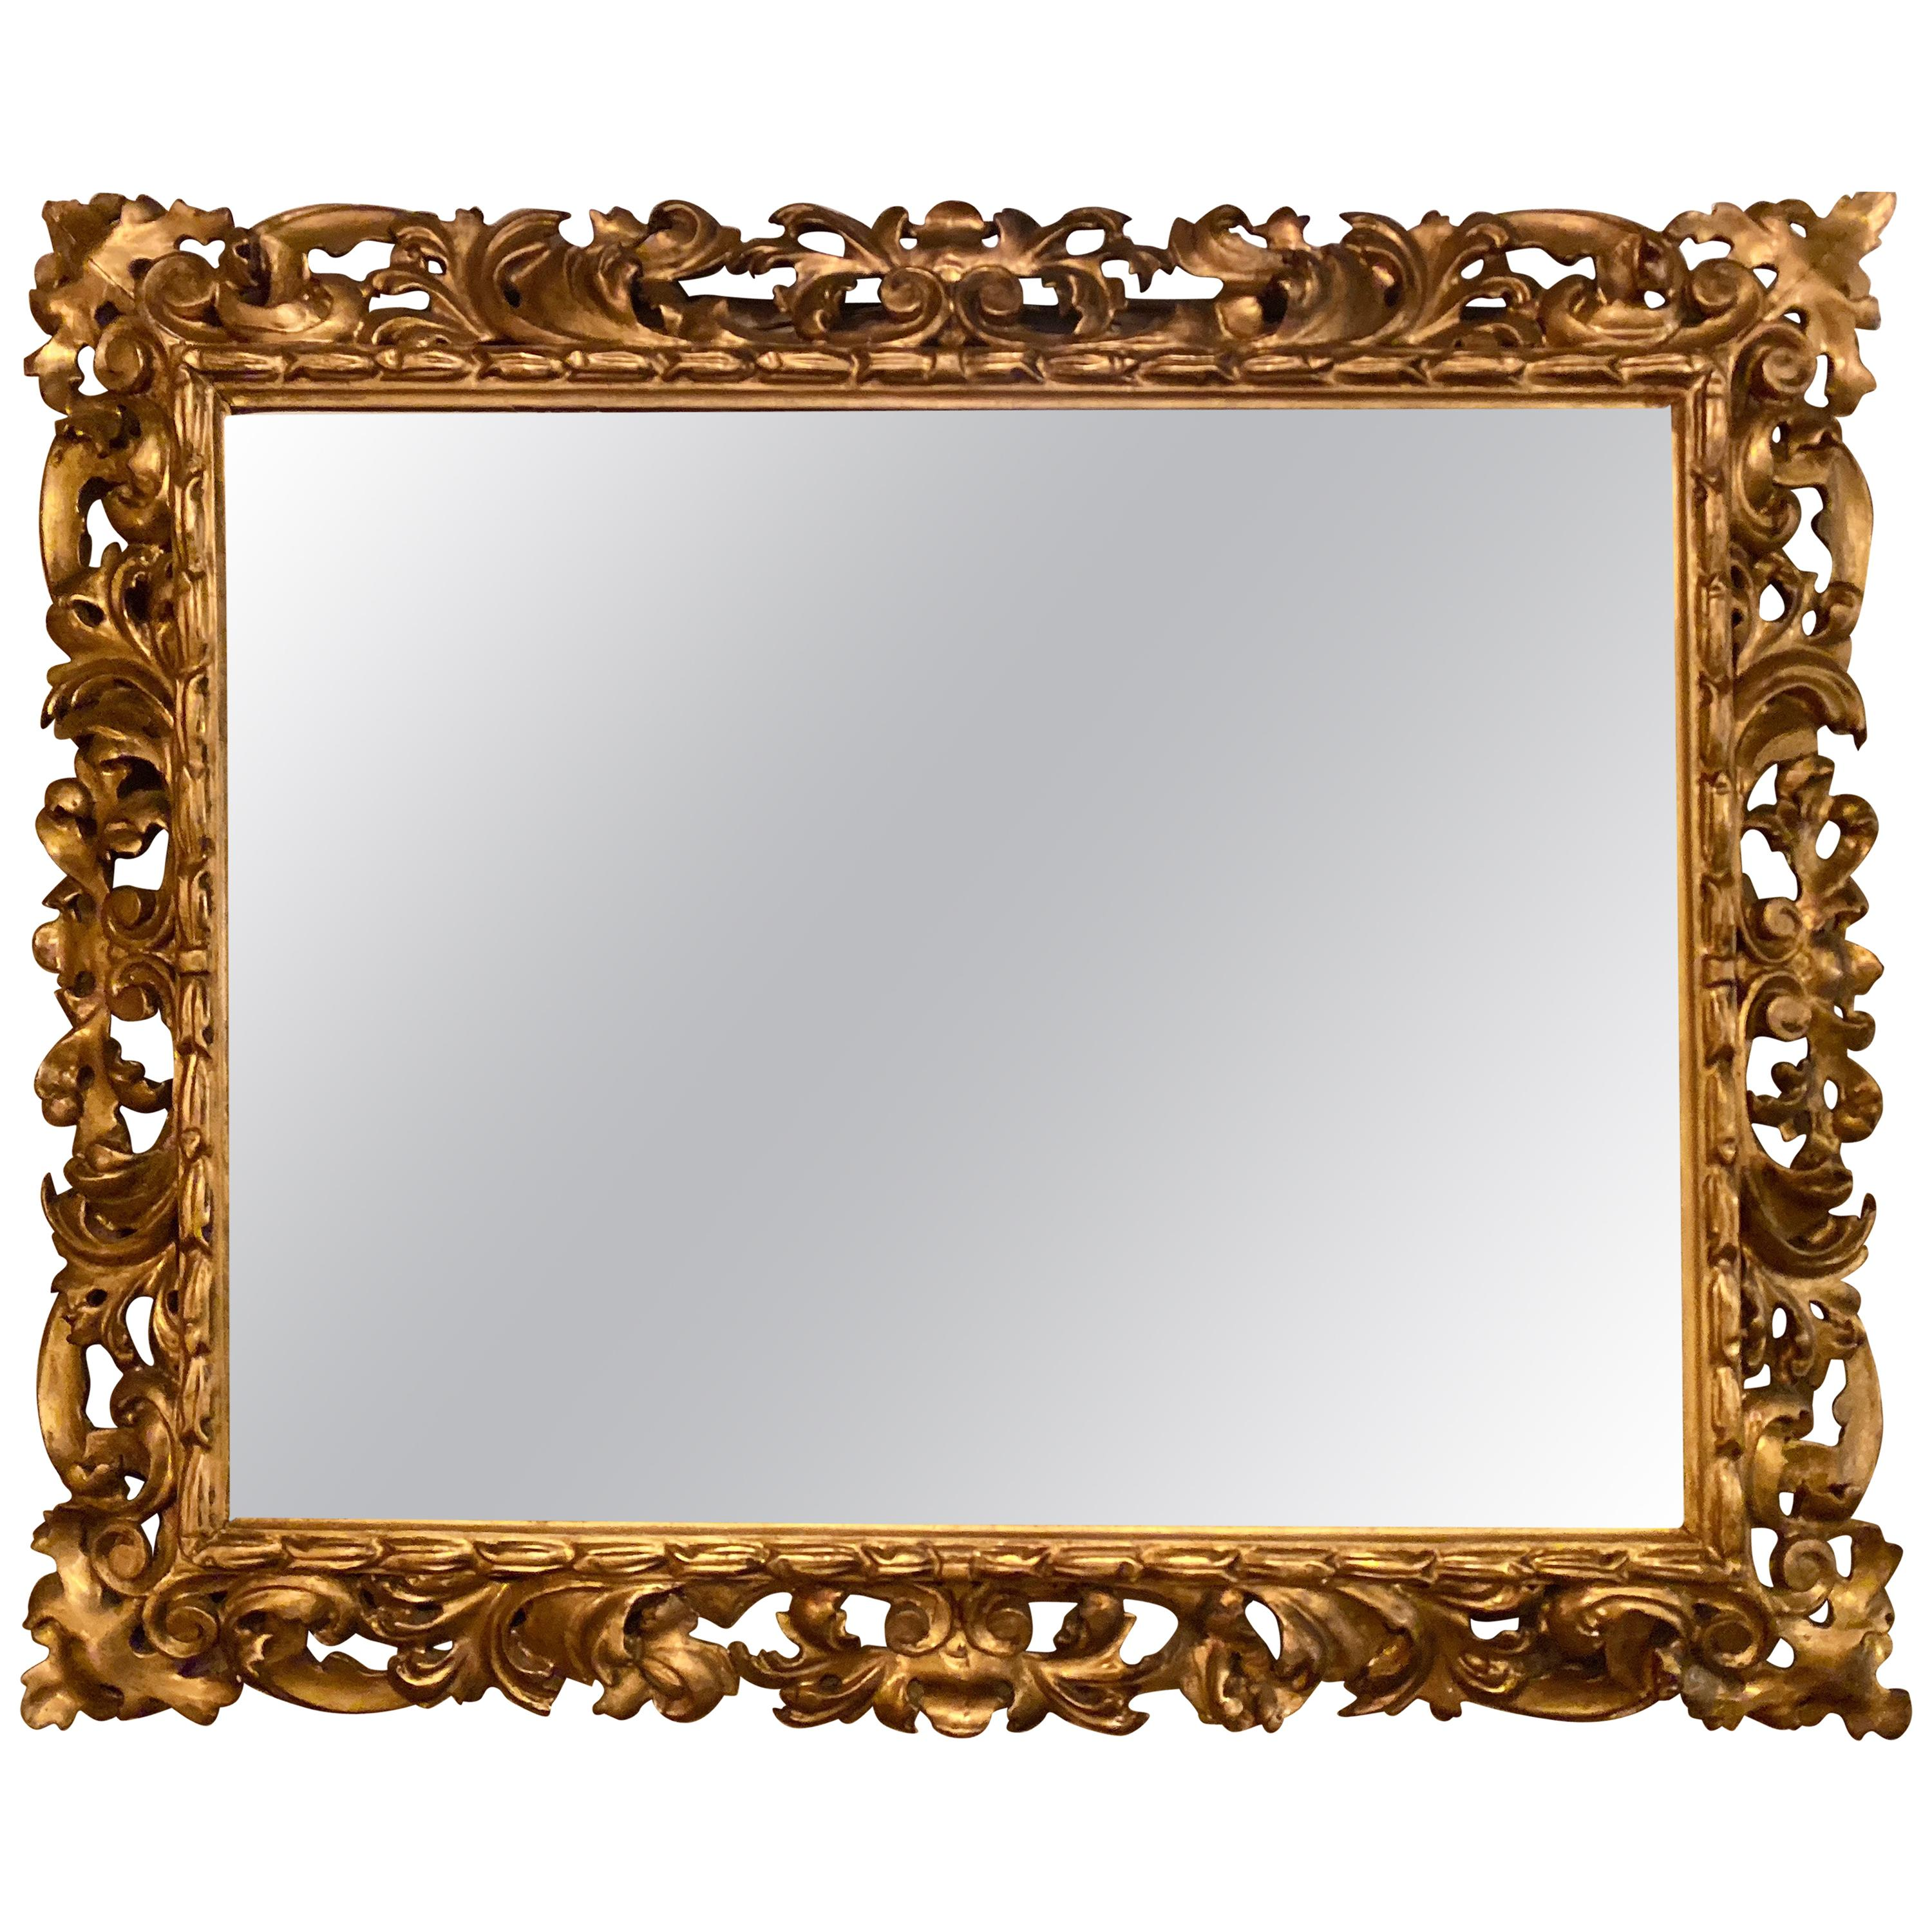 Gilt Gesso Decorated Carved Wall / Console Mirror, Italian